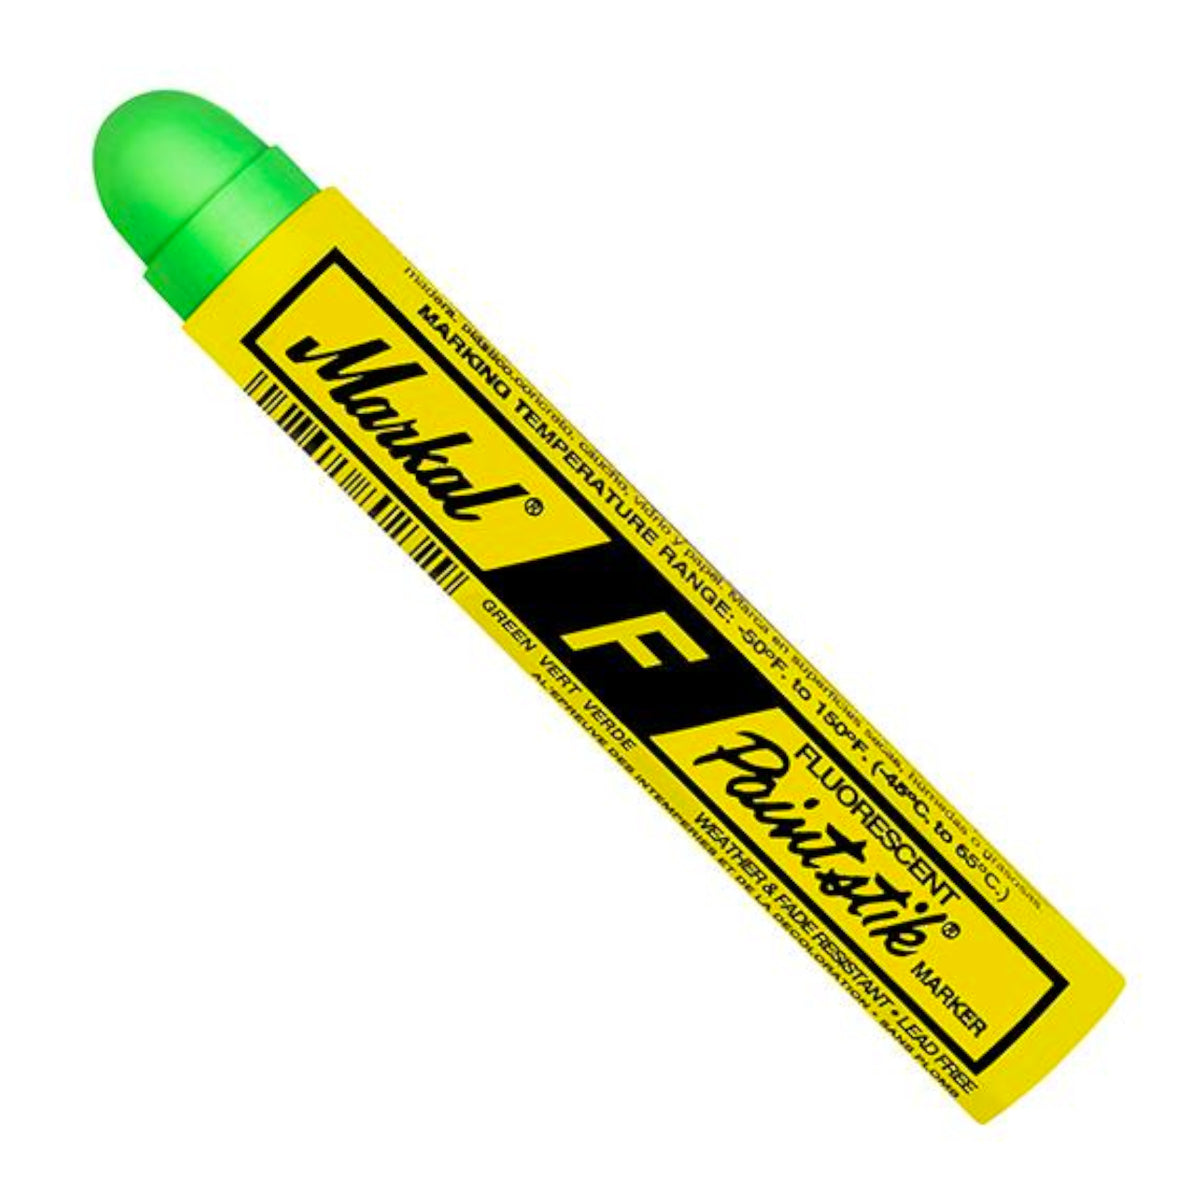 Markal F PaintStik - Fluorescent Green